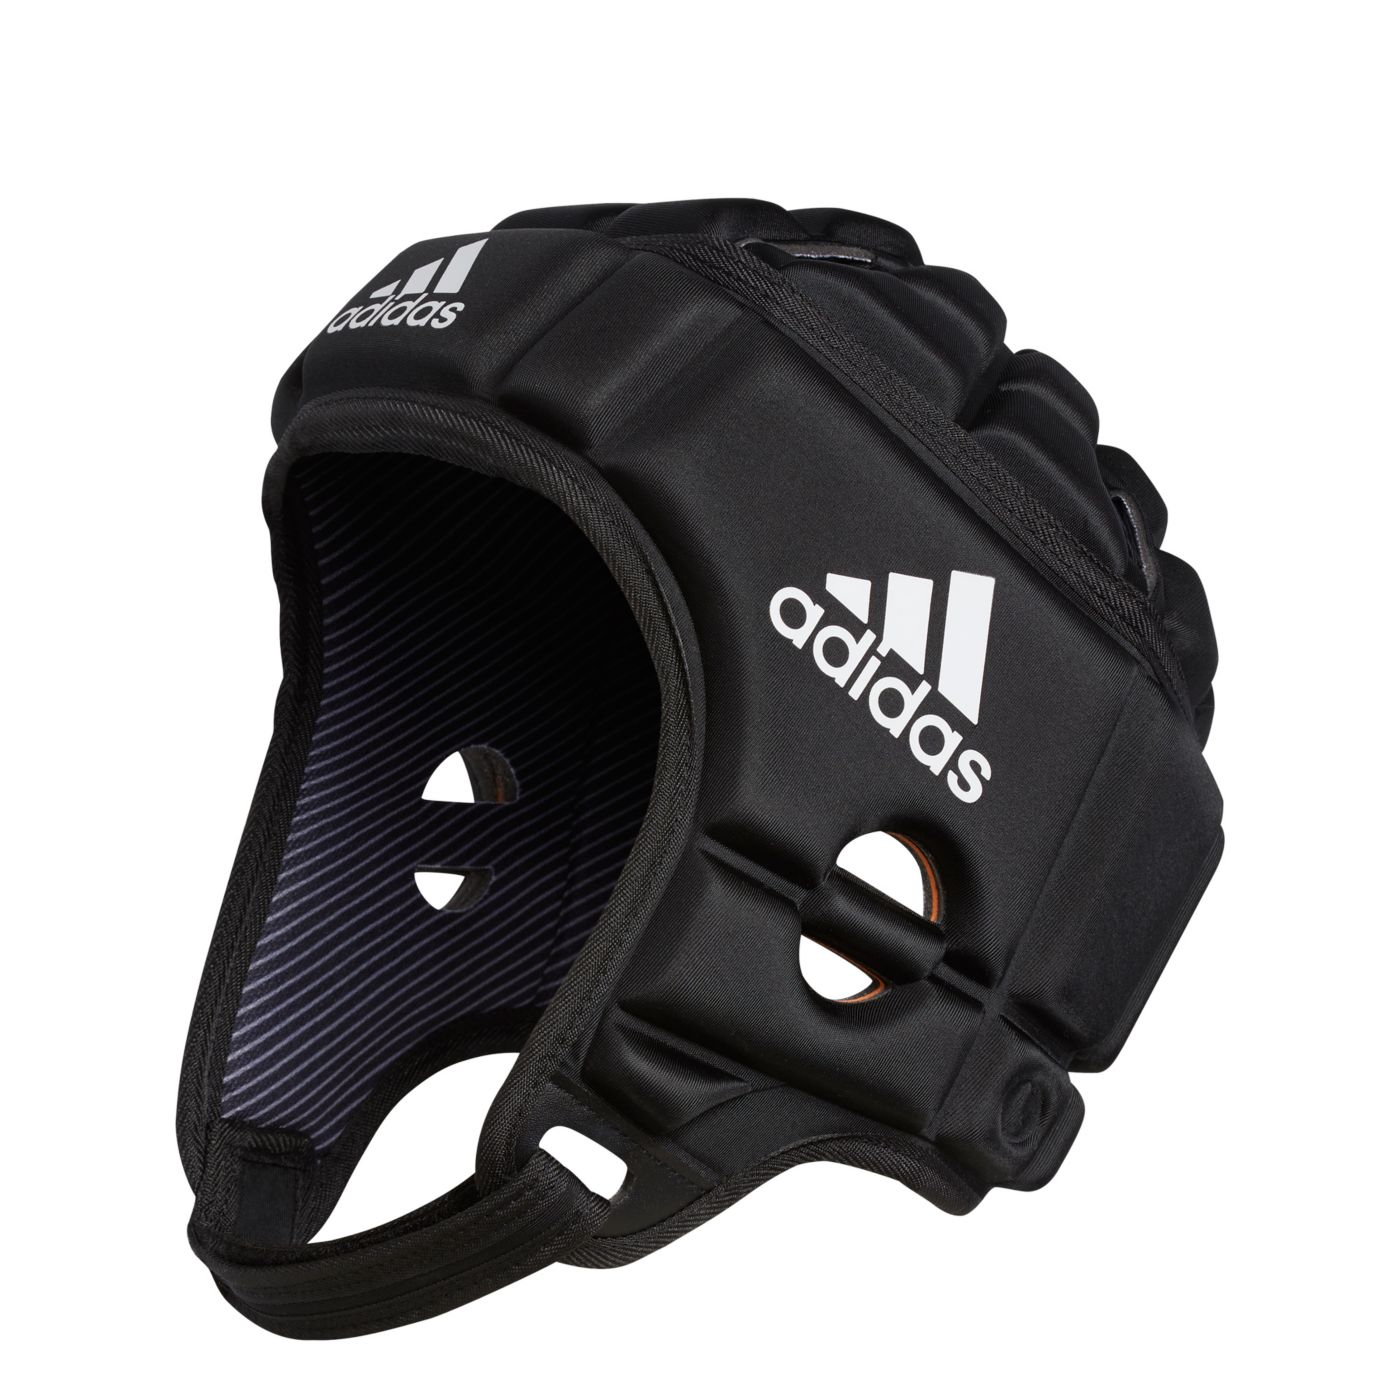 Adidas Force PRO Softshell Headgear